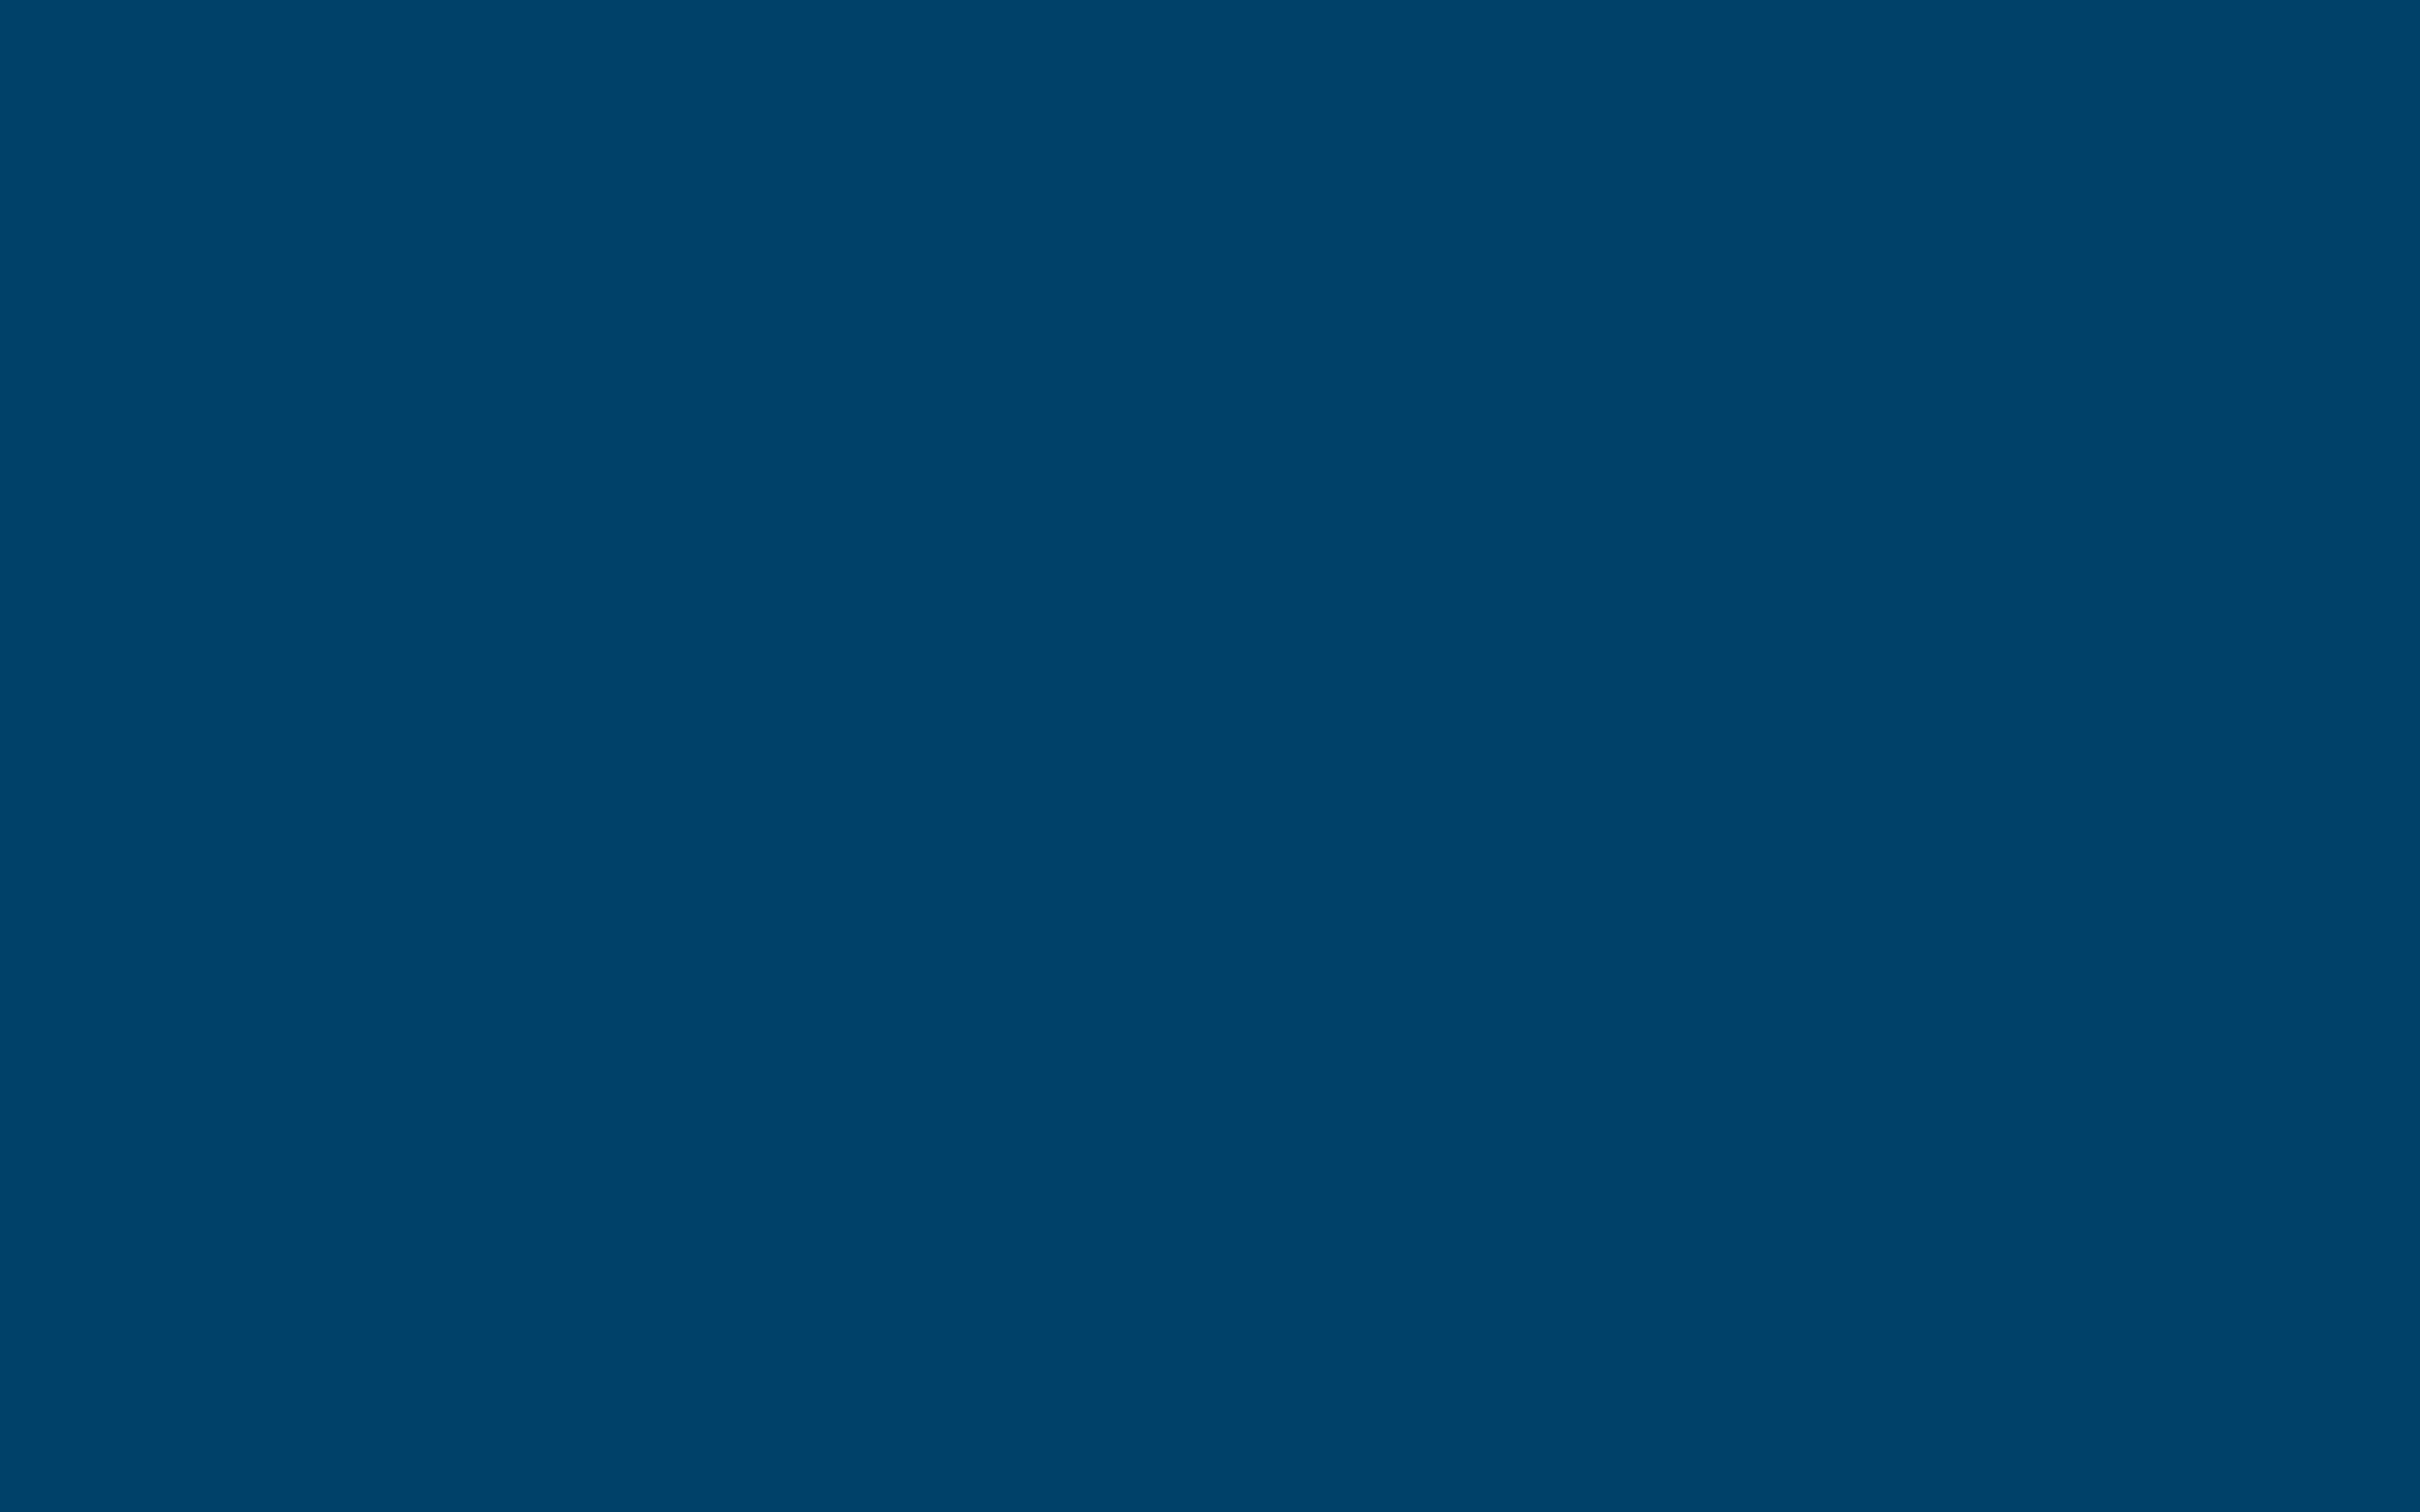 Blue solid color background view and download the below background 2560x1600